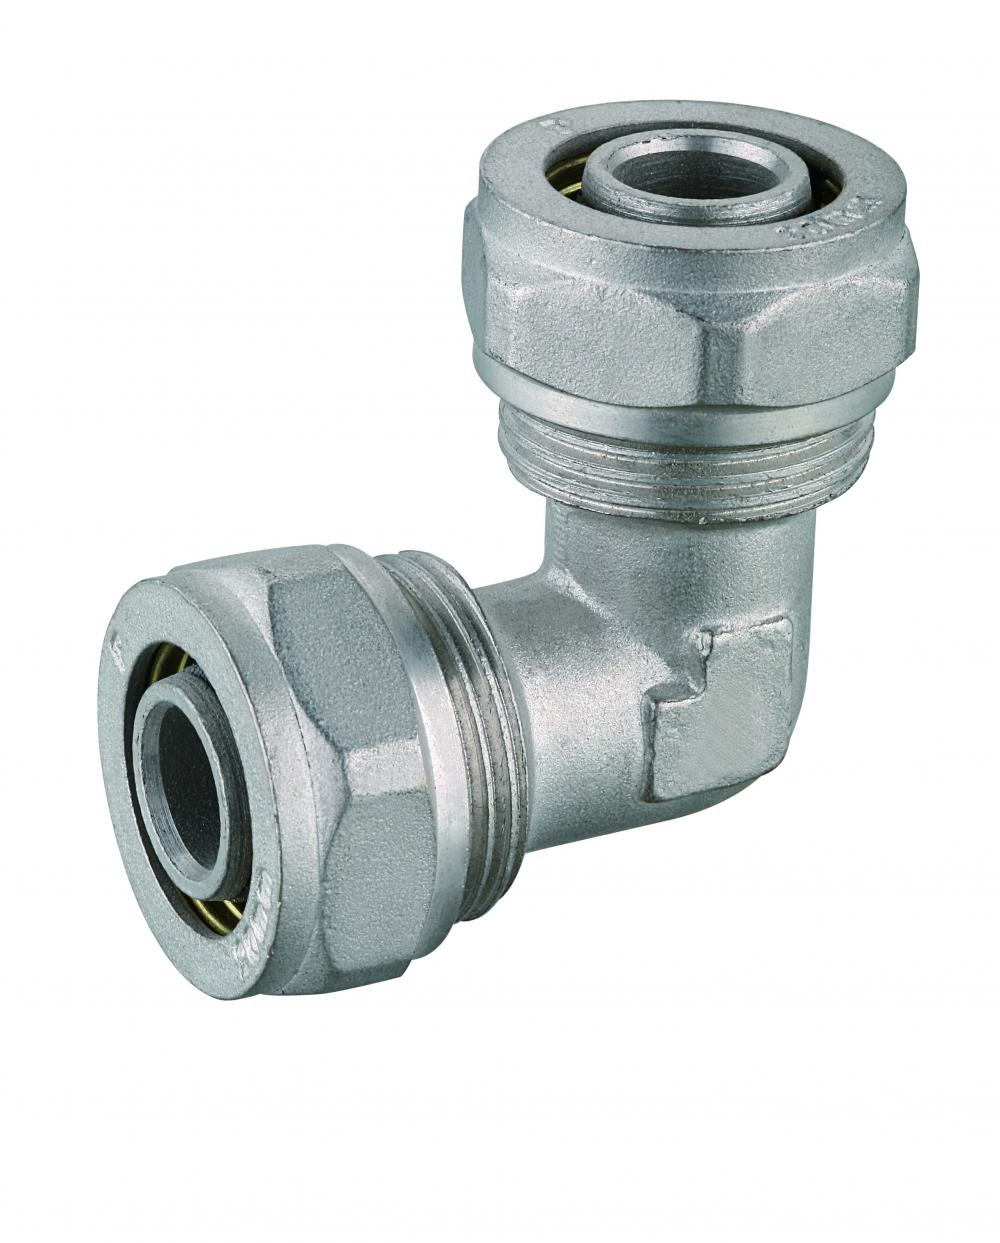 PEX brass elbow compression fitting